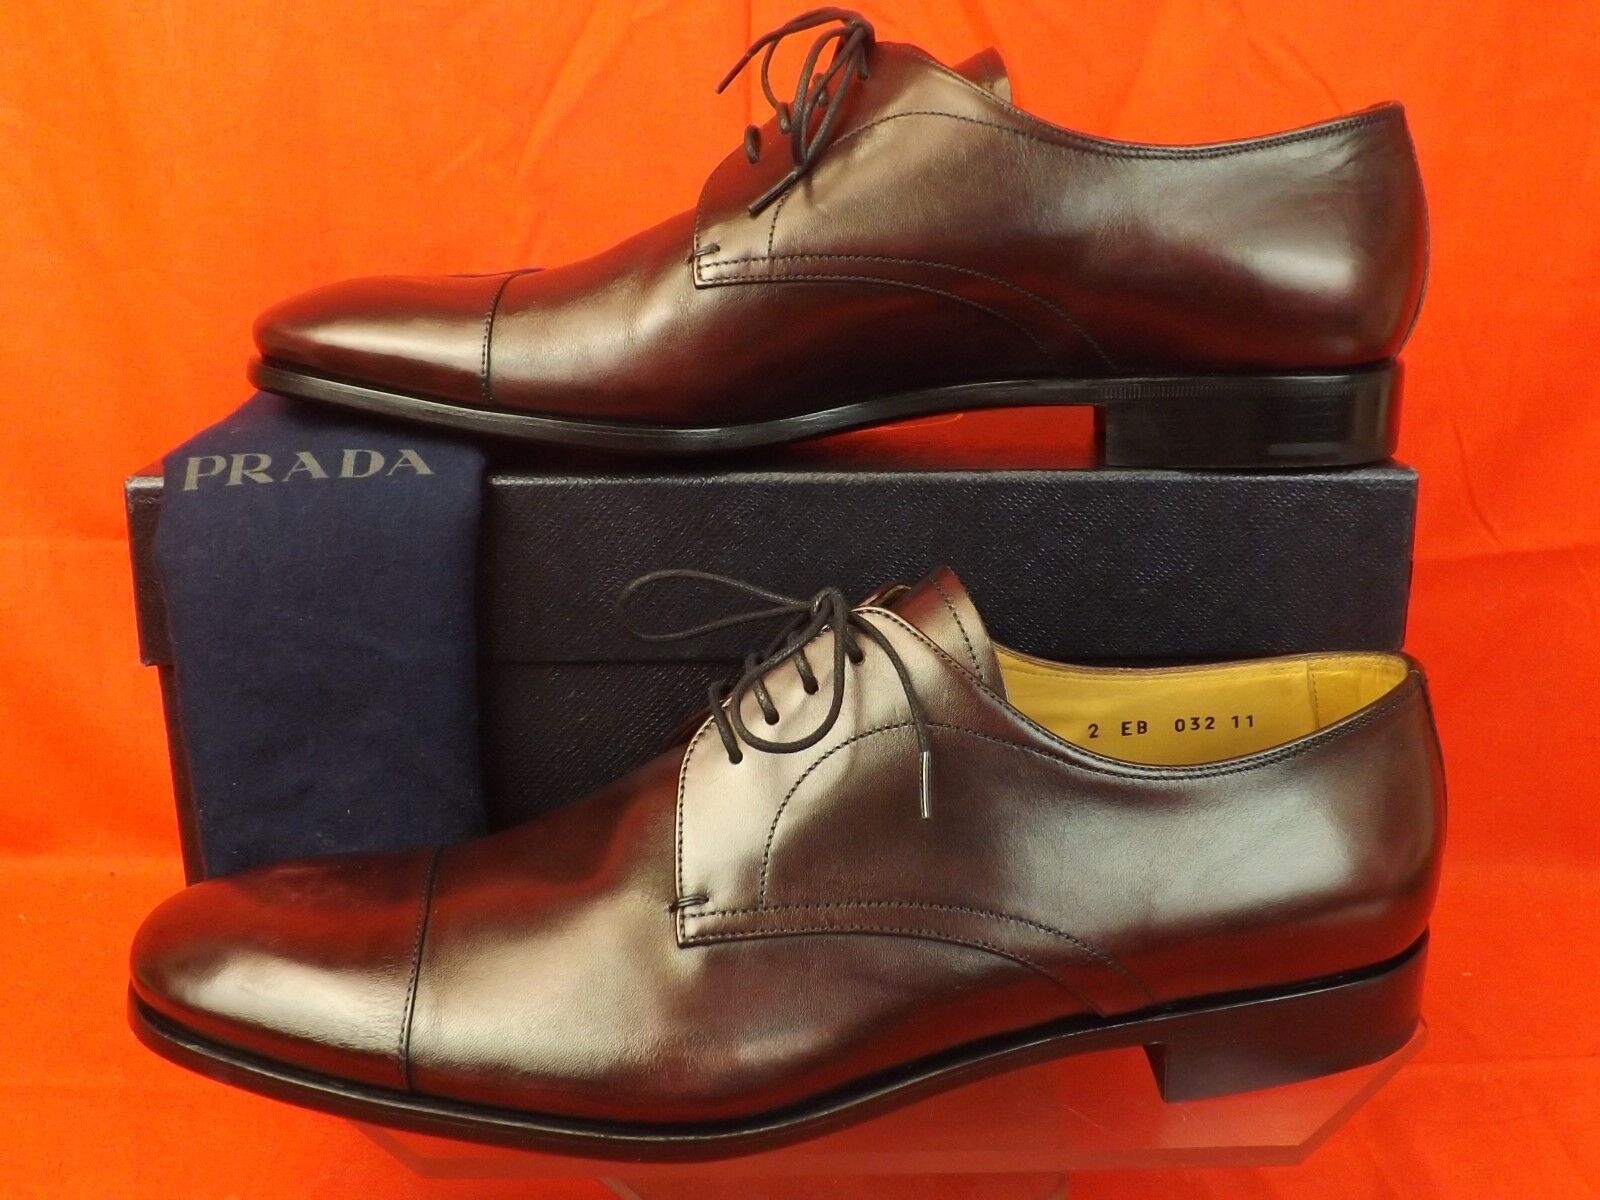 NIB PRADA BURGUNDY BURNISHED LEATHER LACE UP CLASSIC OXFORDS 11 12  780